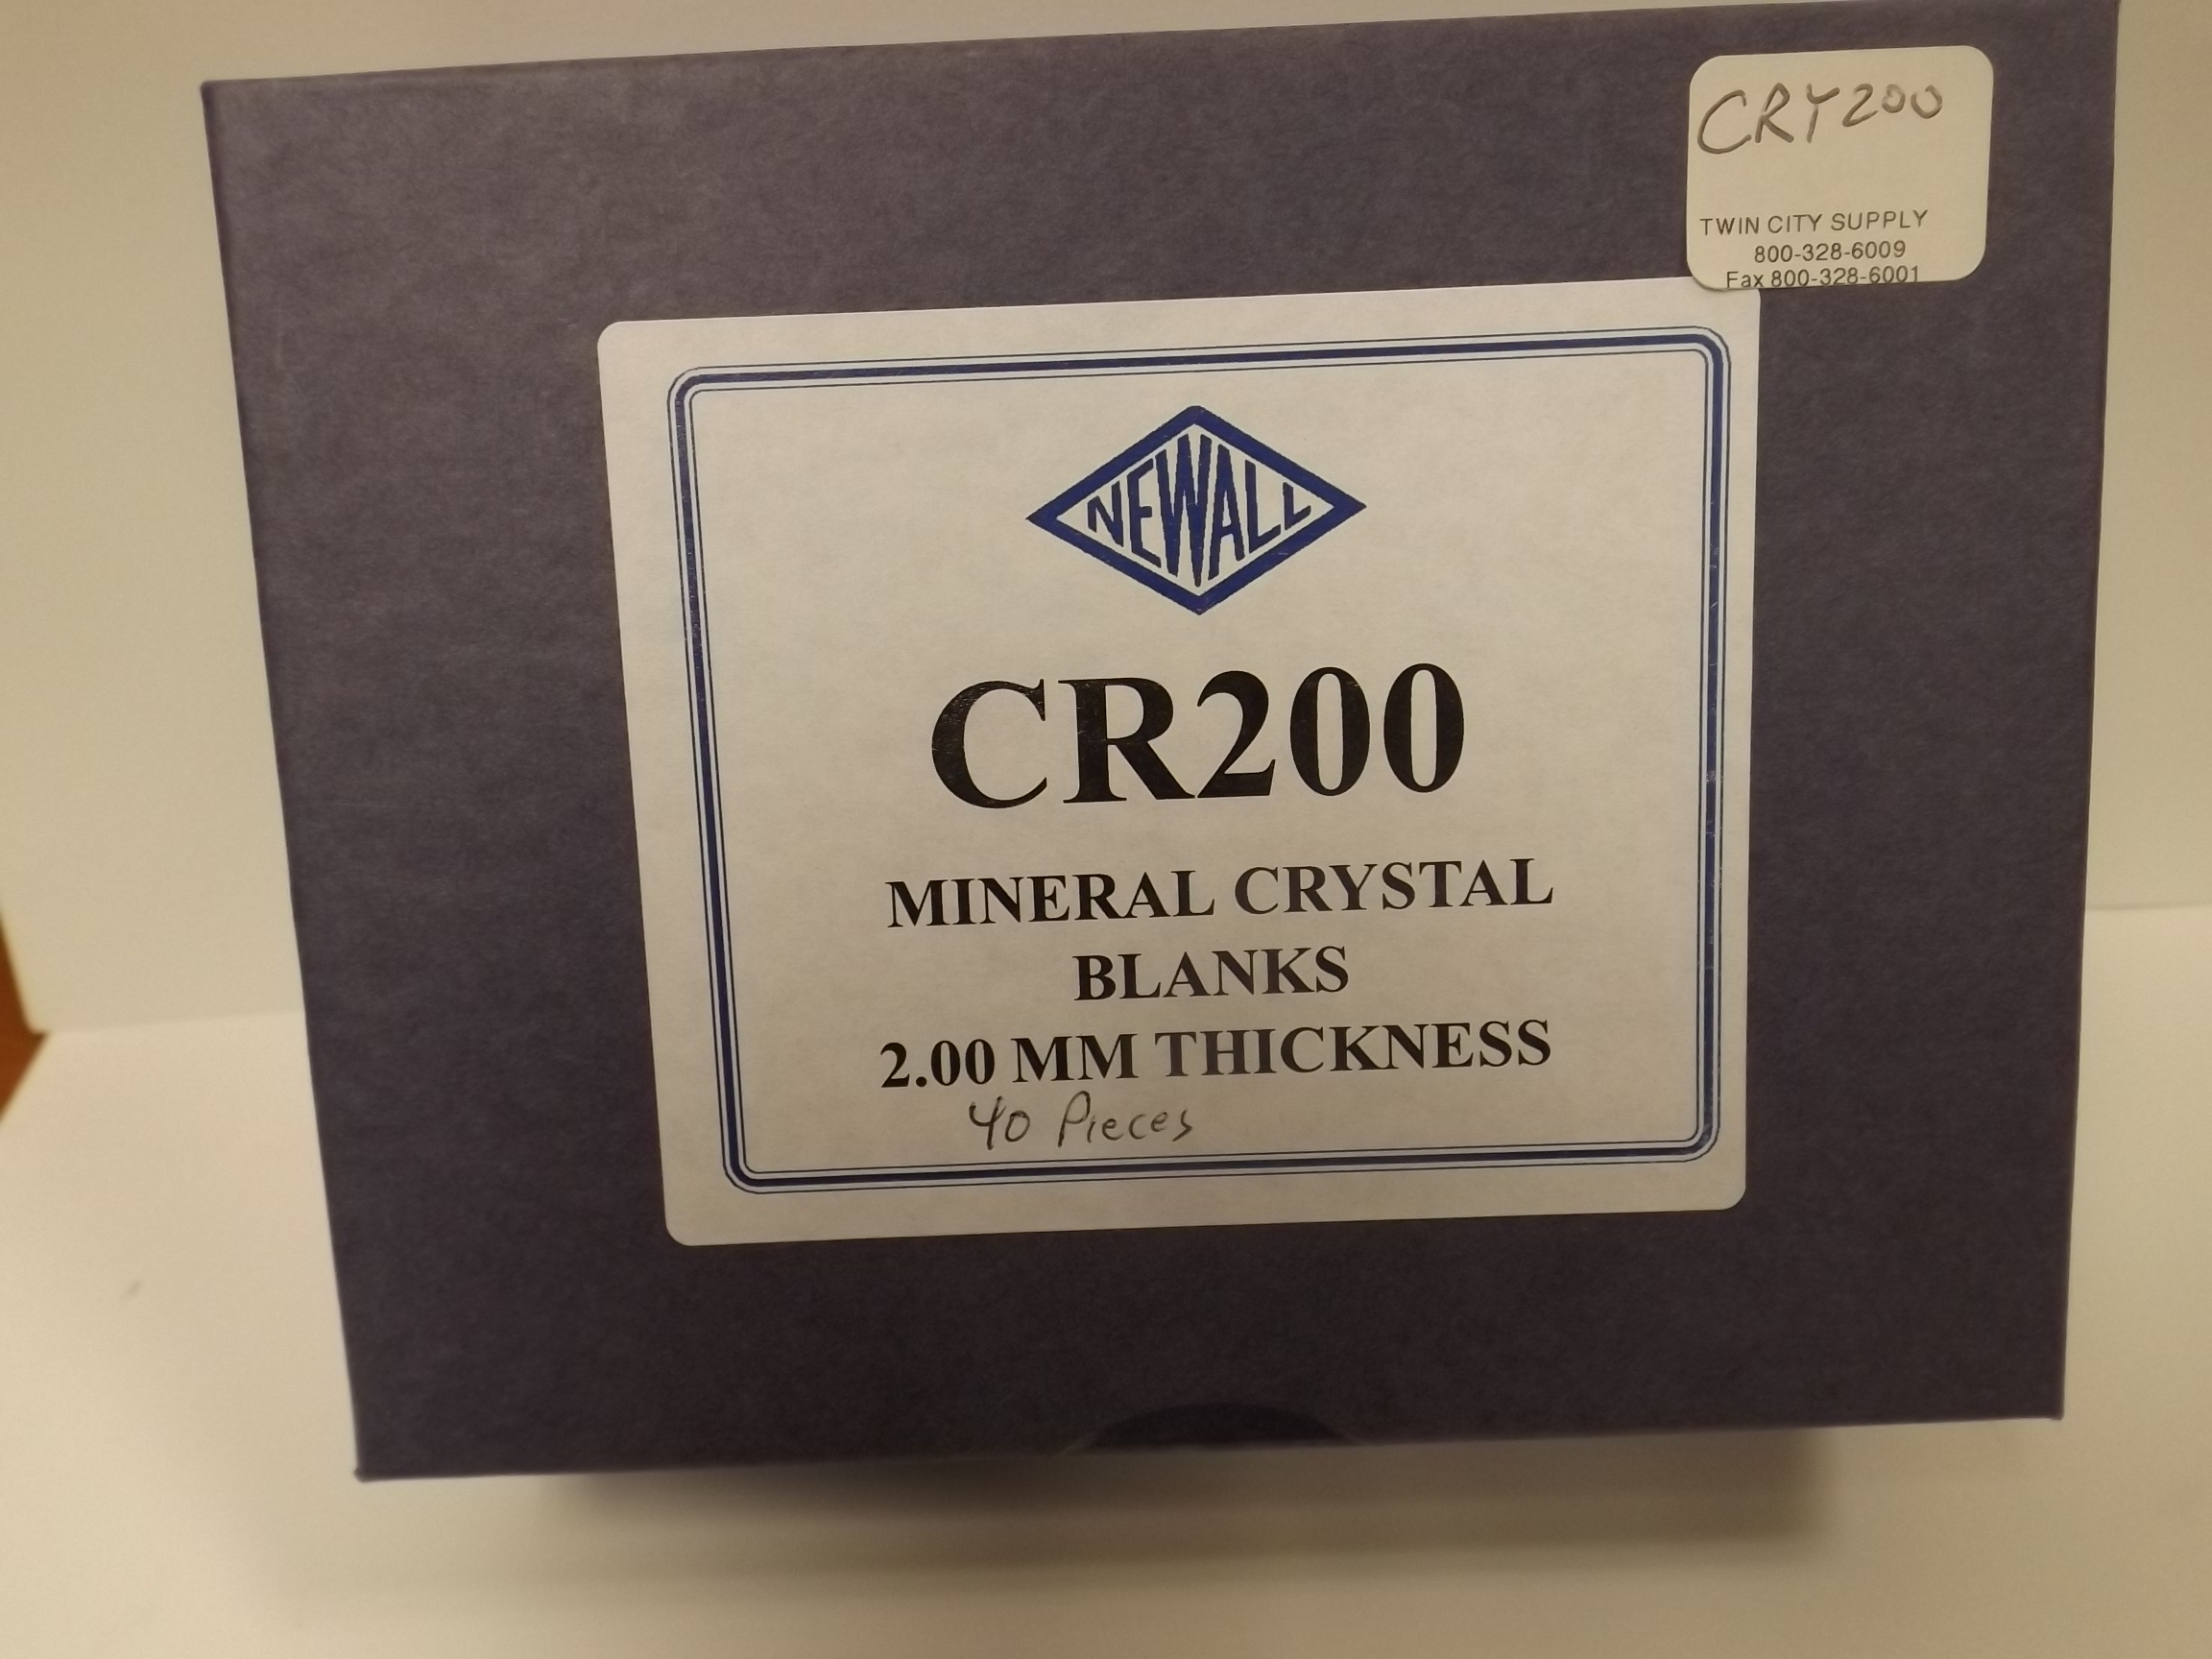 CRY200 New! 40 pc Assortment of XB 2.00mm Mineral Glass Crystals--from Newall